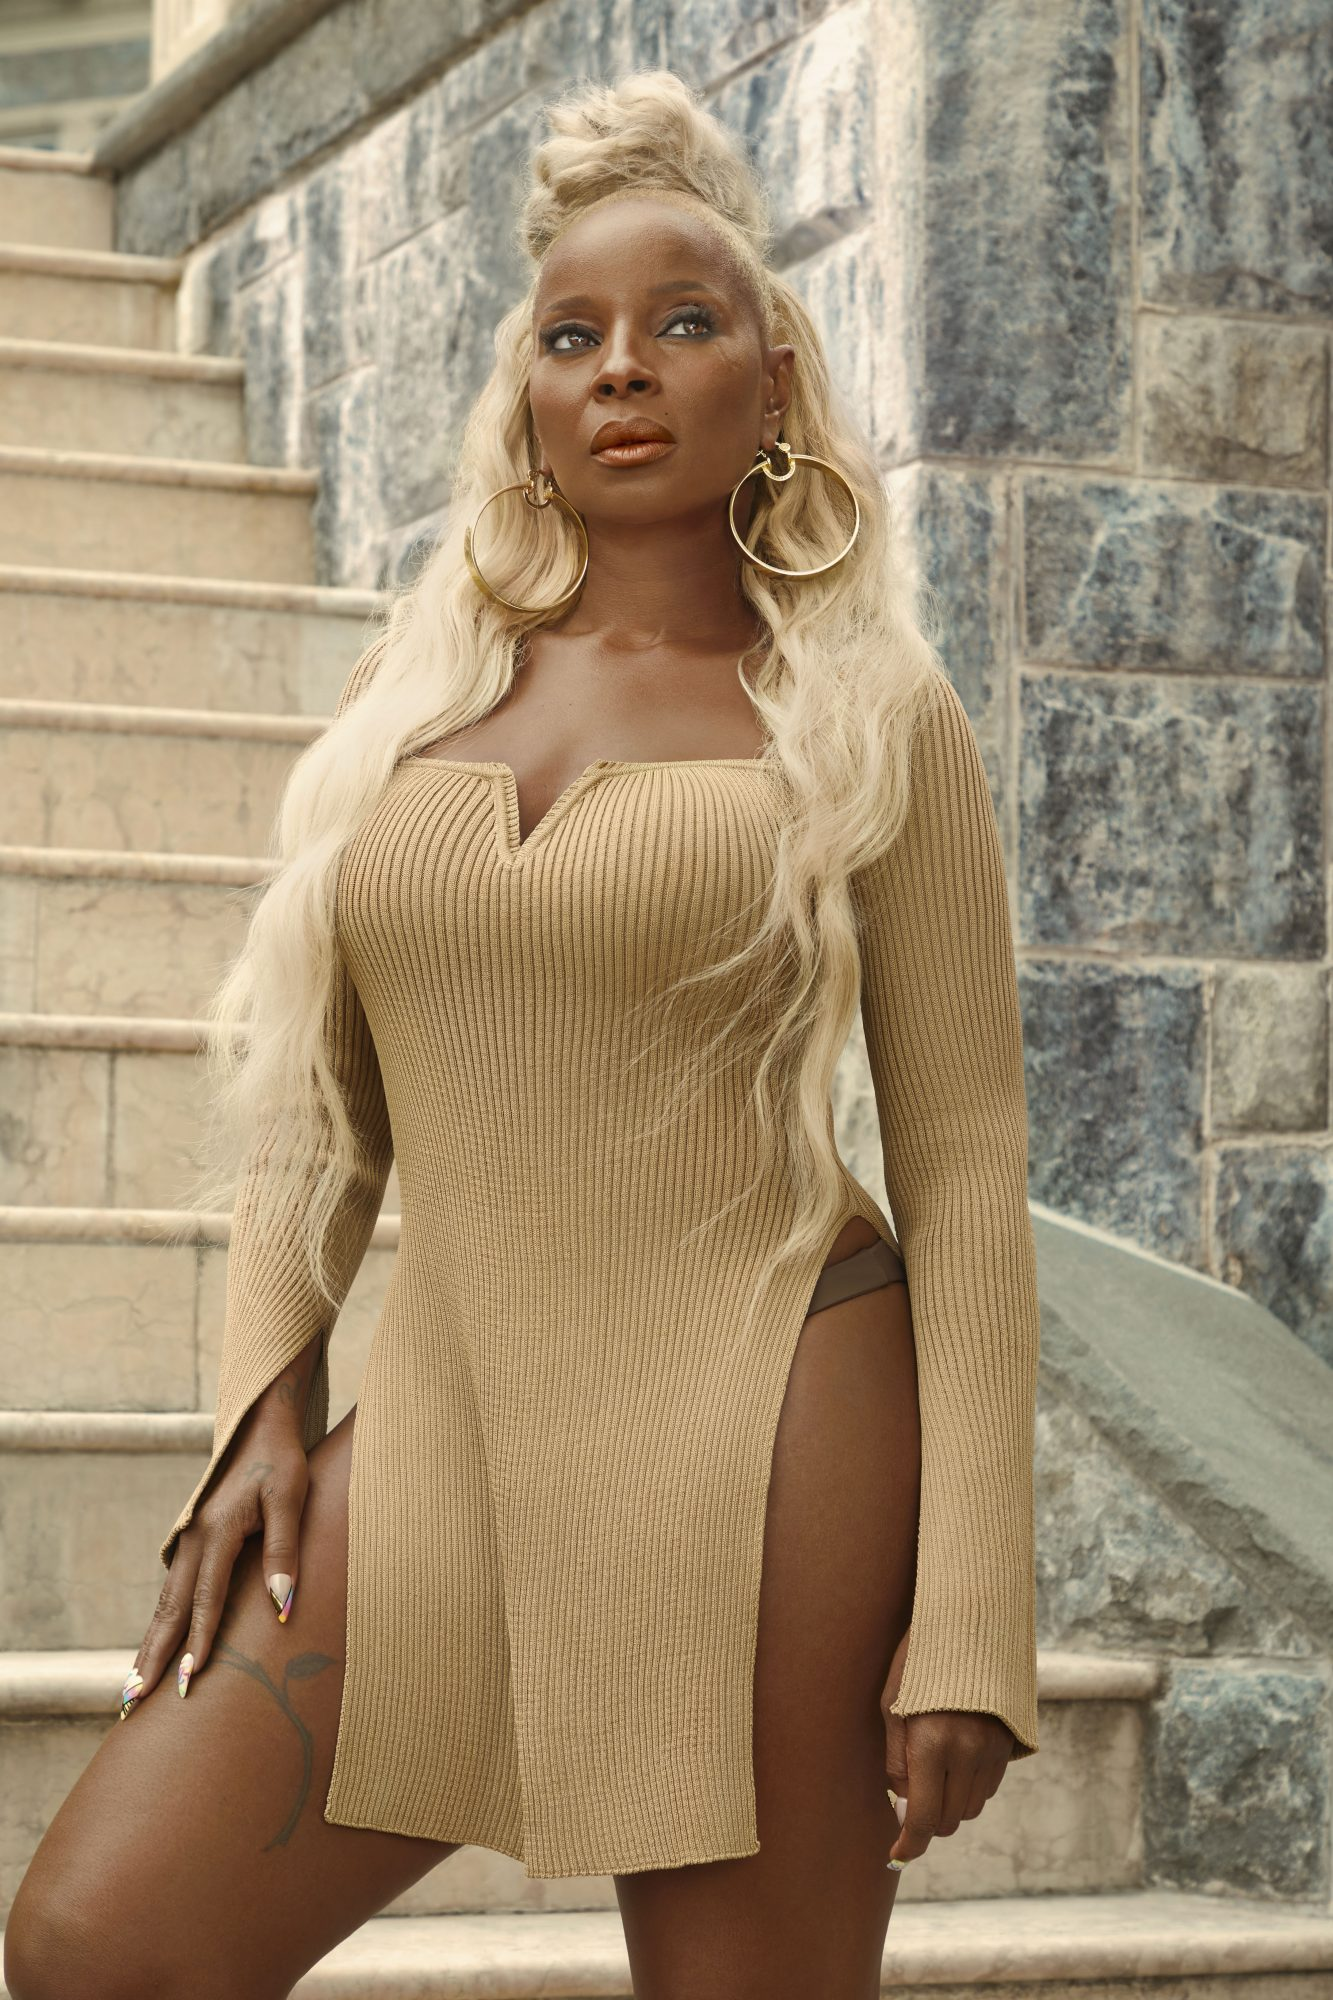 MaryJ-Blige-Health-magazine